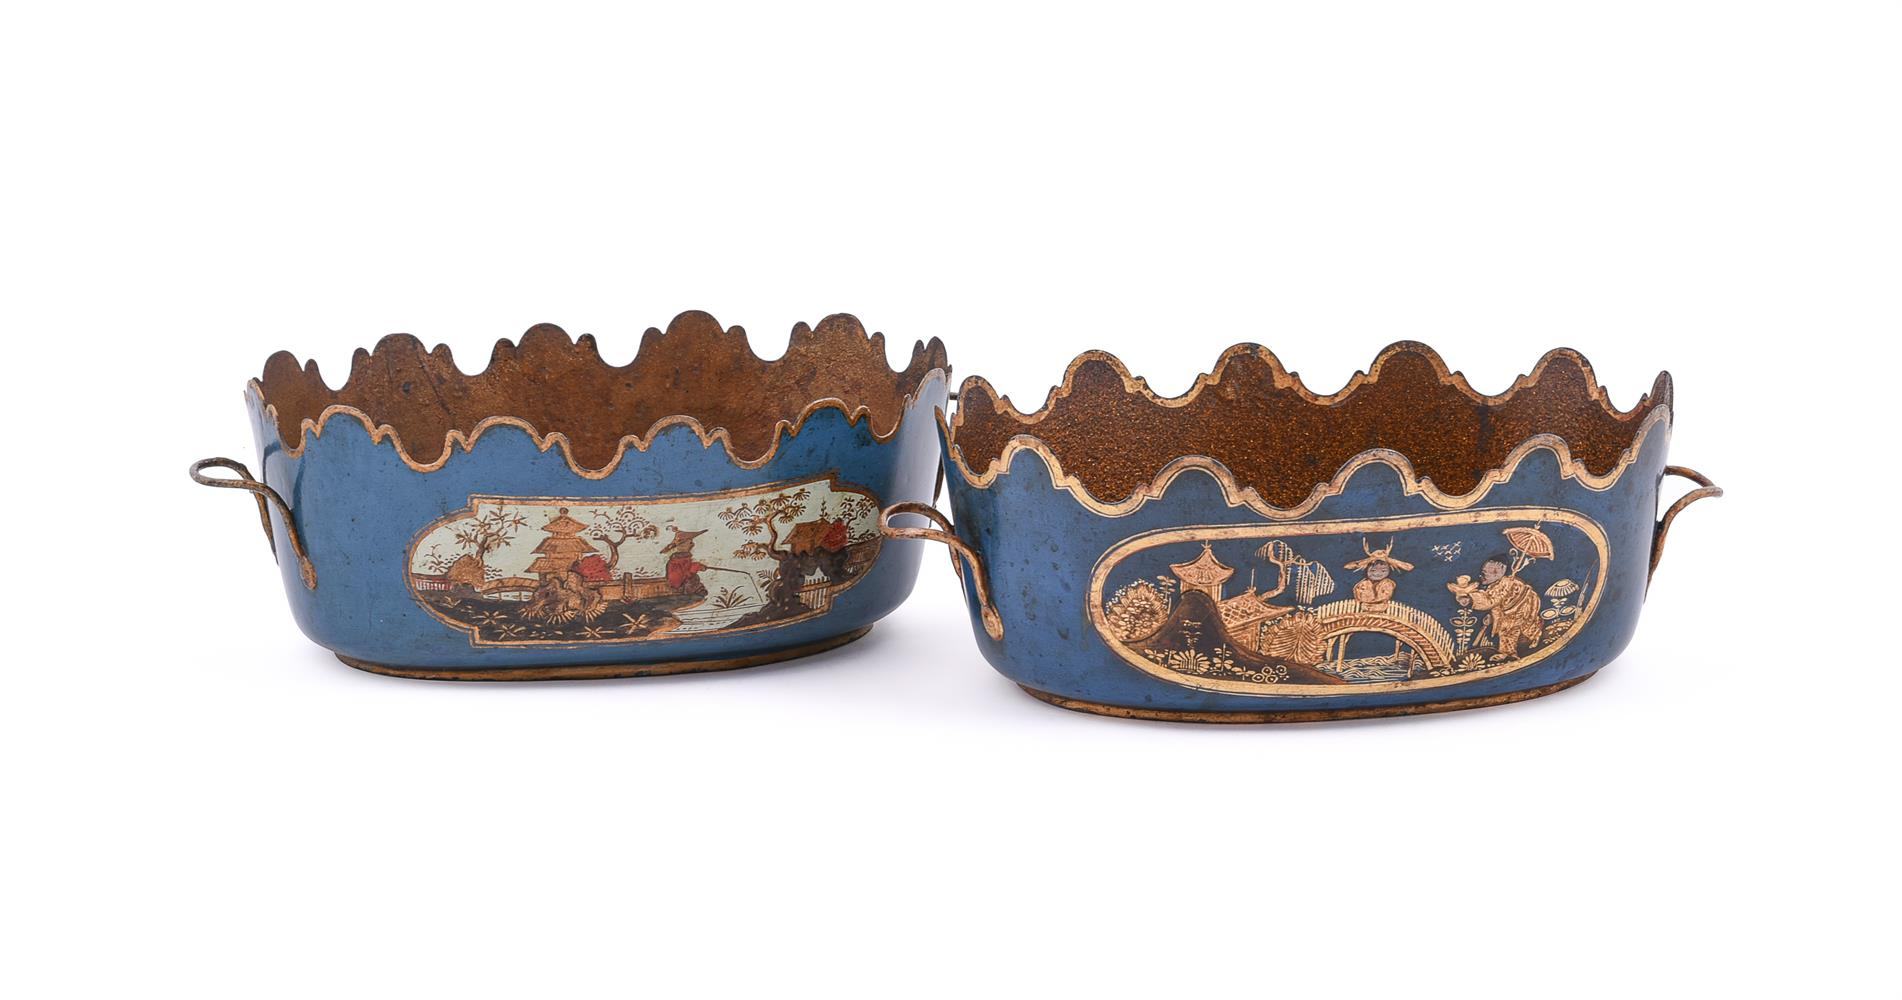 A PAIR OF FRENCH CHINOISERIE TÔLE PEINTE SEAUX À VERRE OR GLASS COOLERS, SECOND HALF 18TH CENTURY